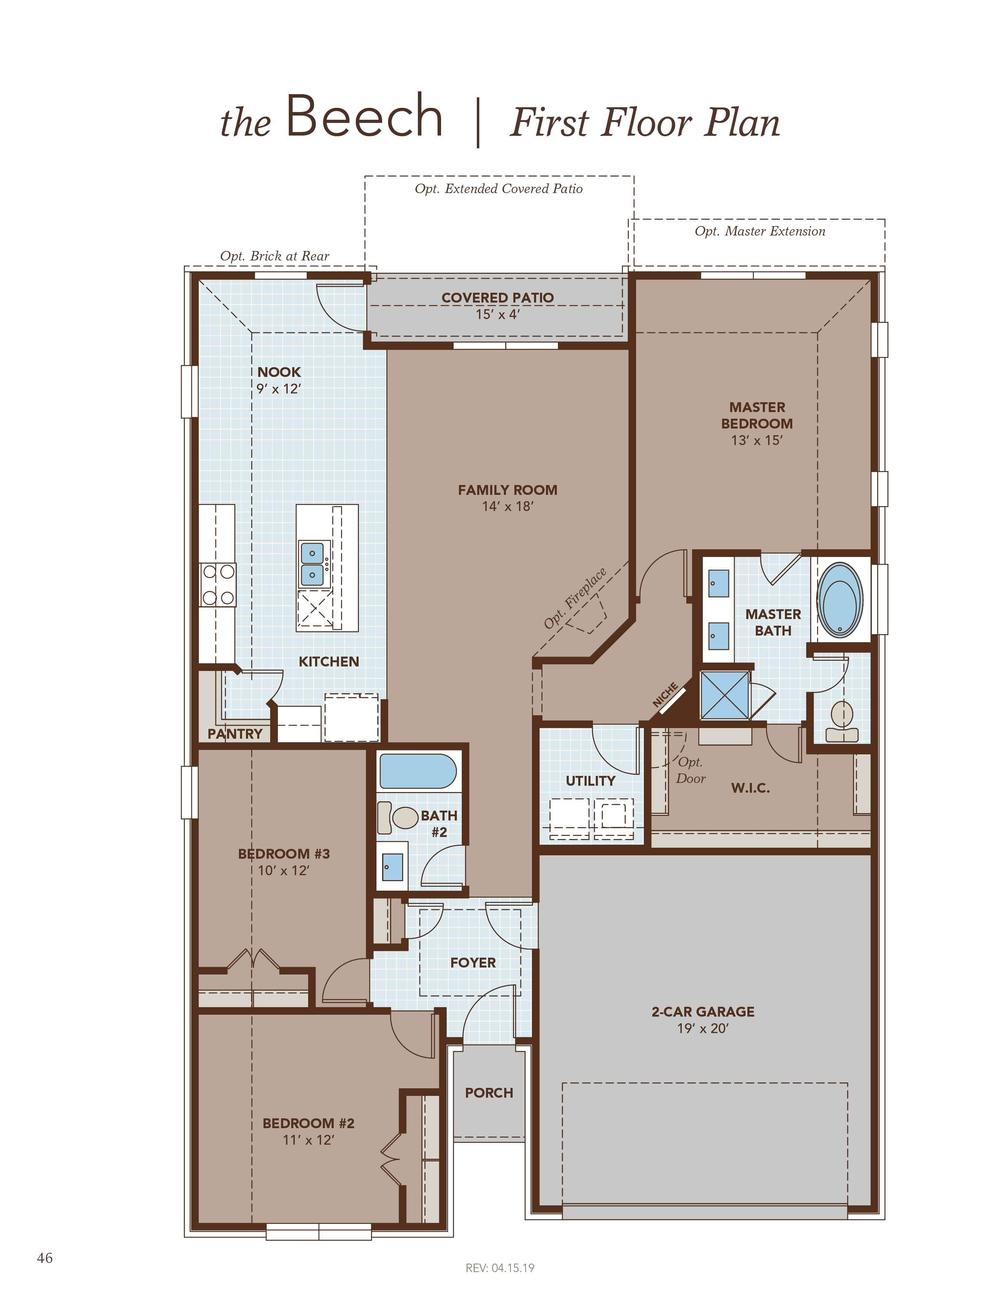 Beech First Floor Plan